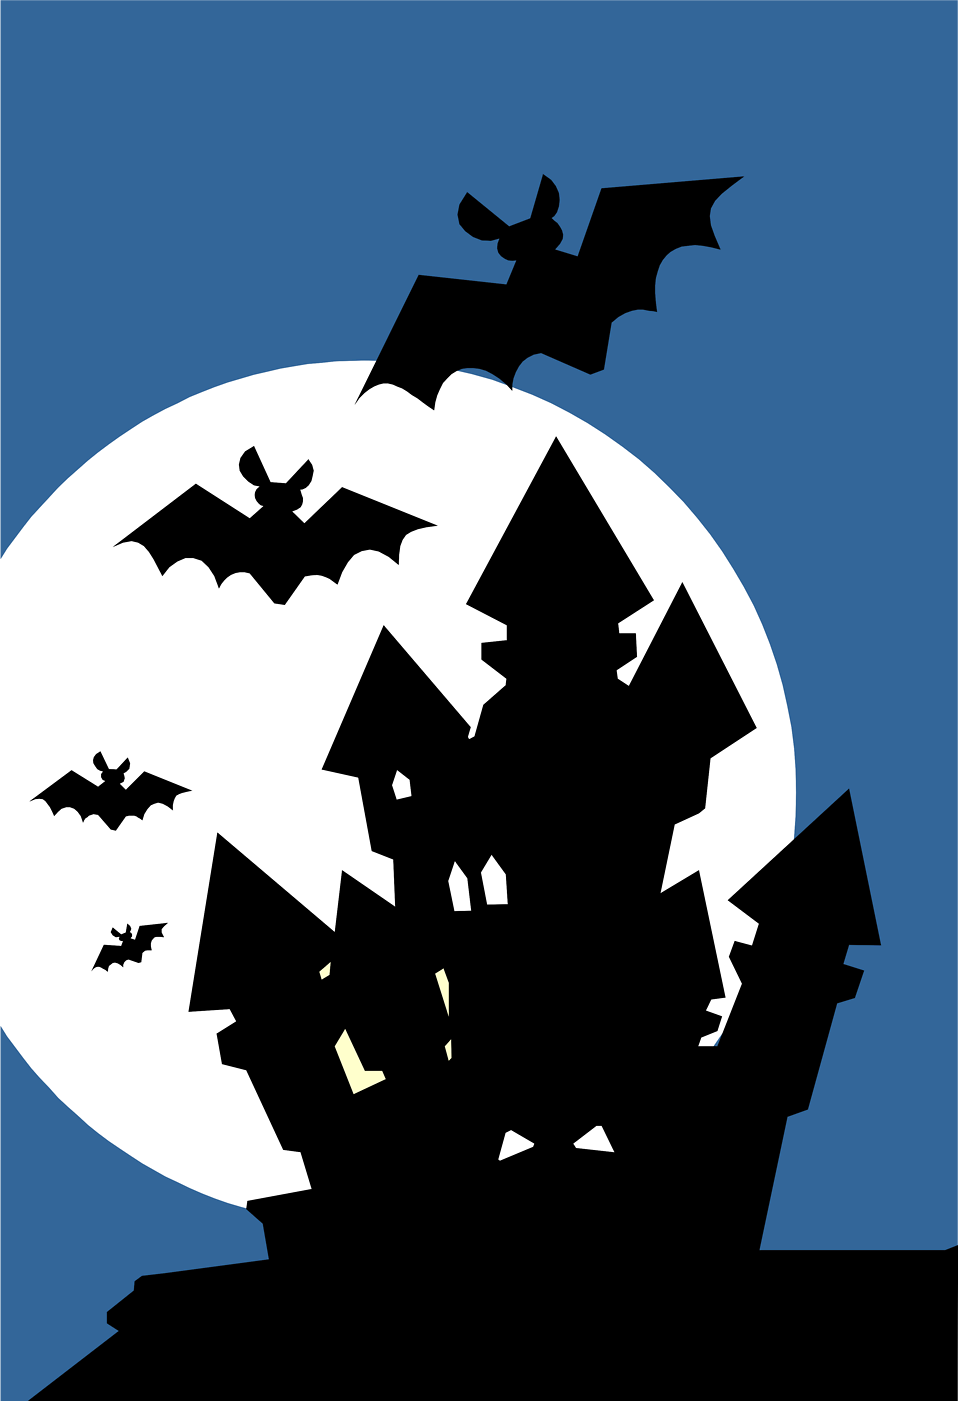 Illustration of a haunted house with bats : Free Stock Photo